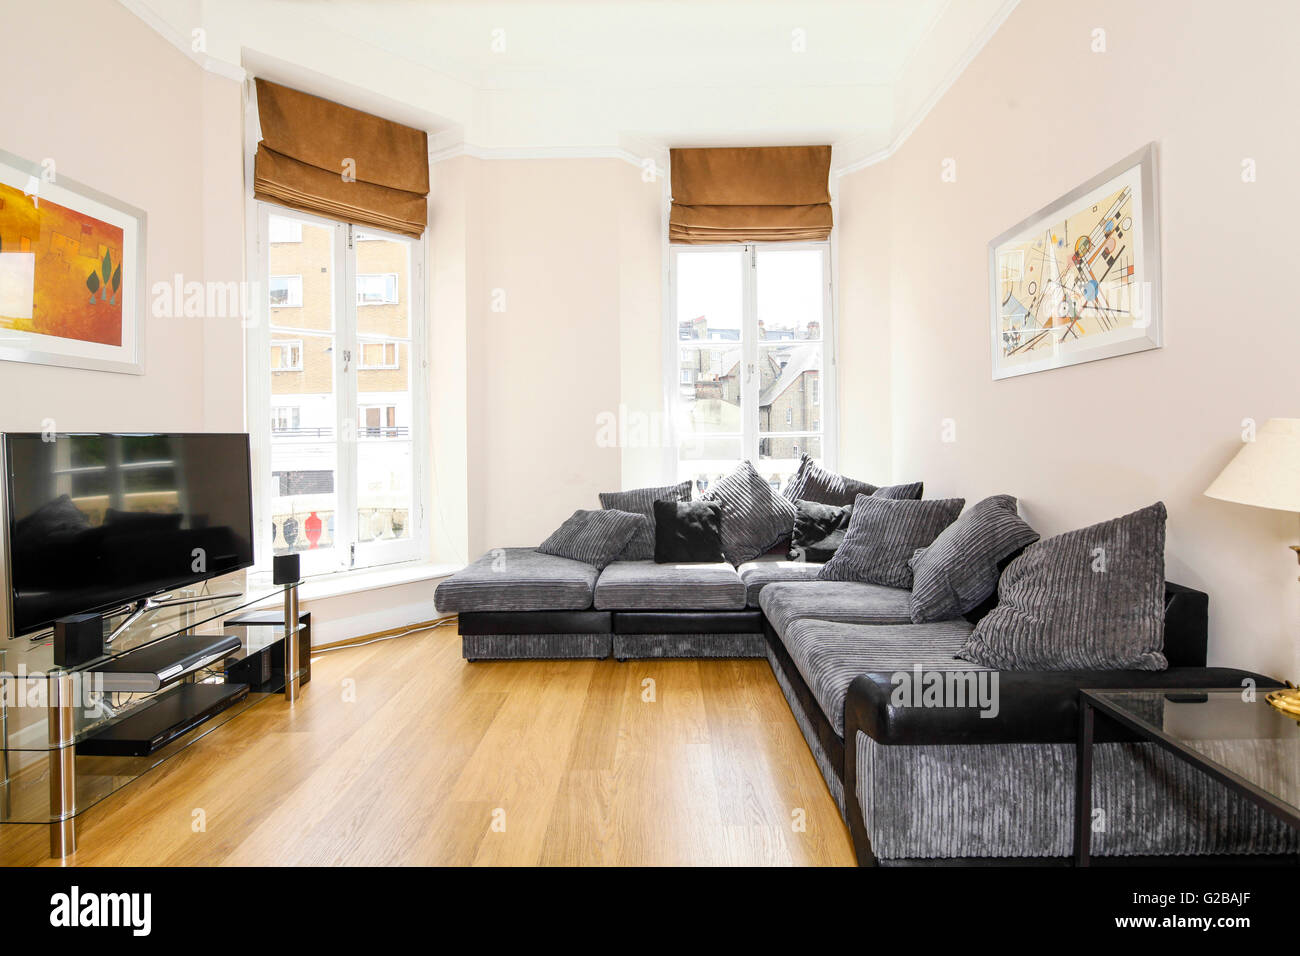 Trendy Couches park house, harrington road. trendy modern living room with grey